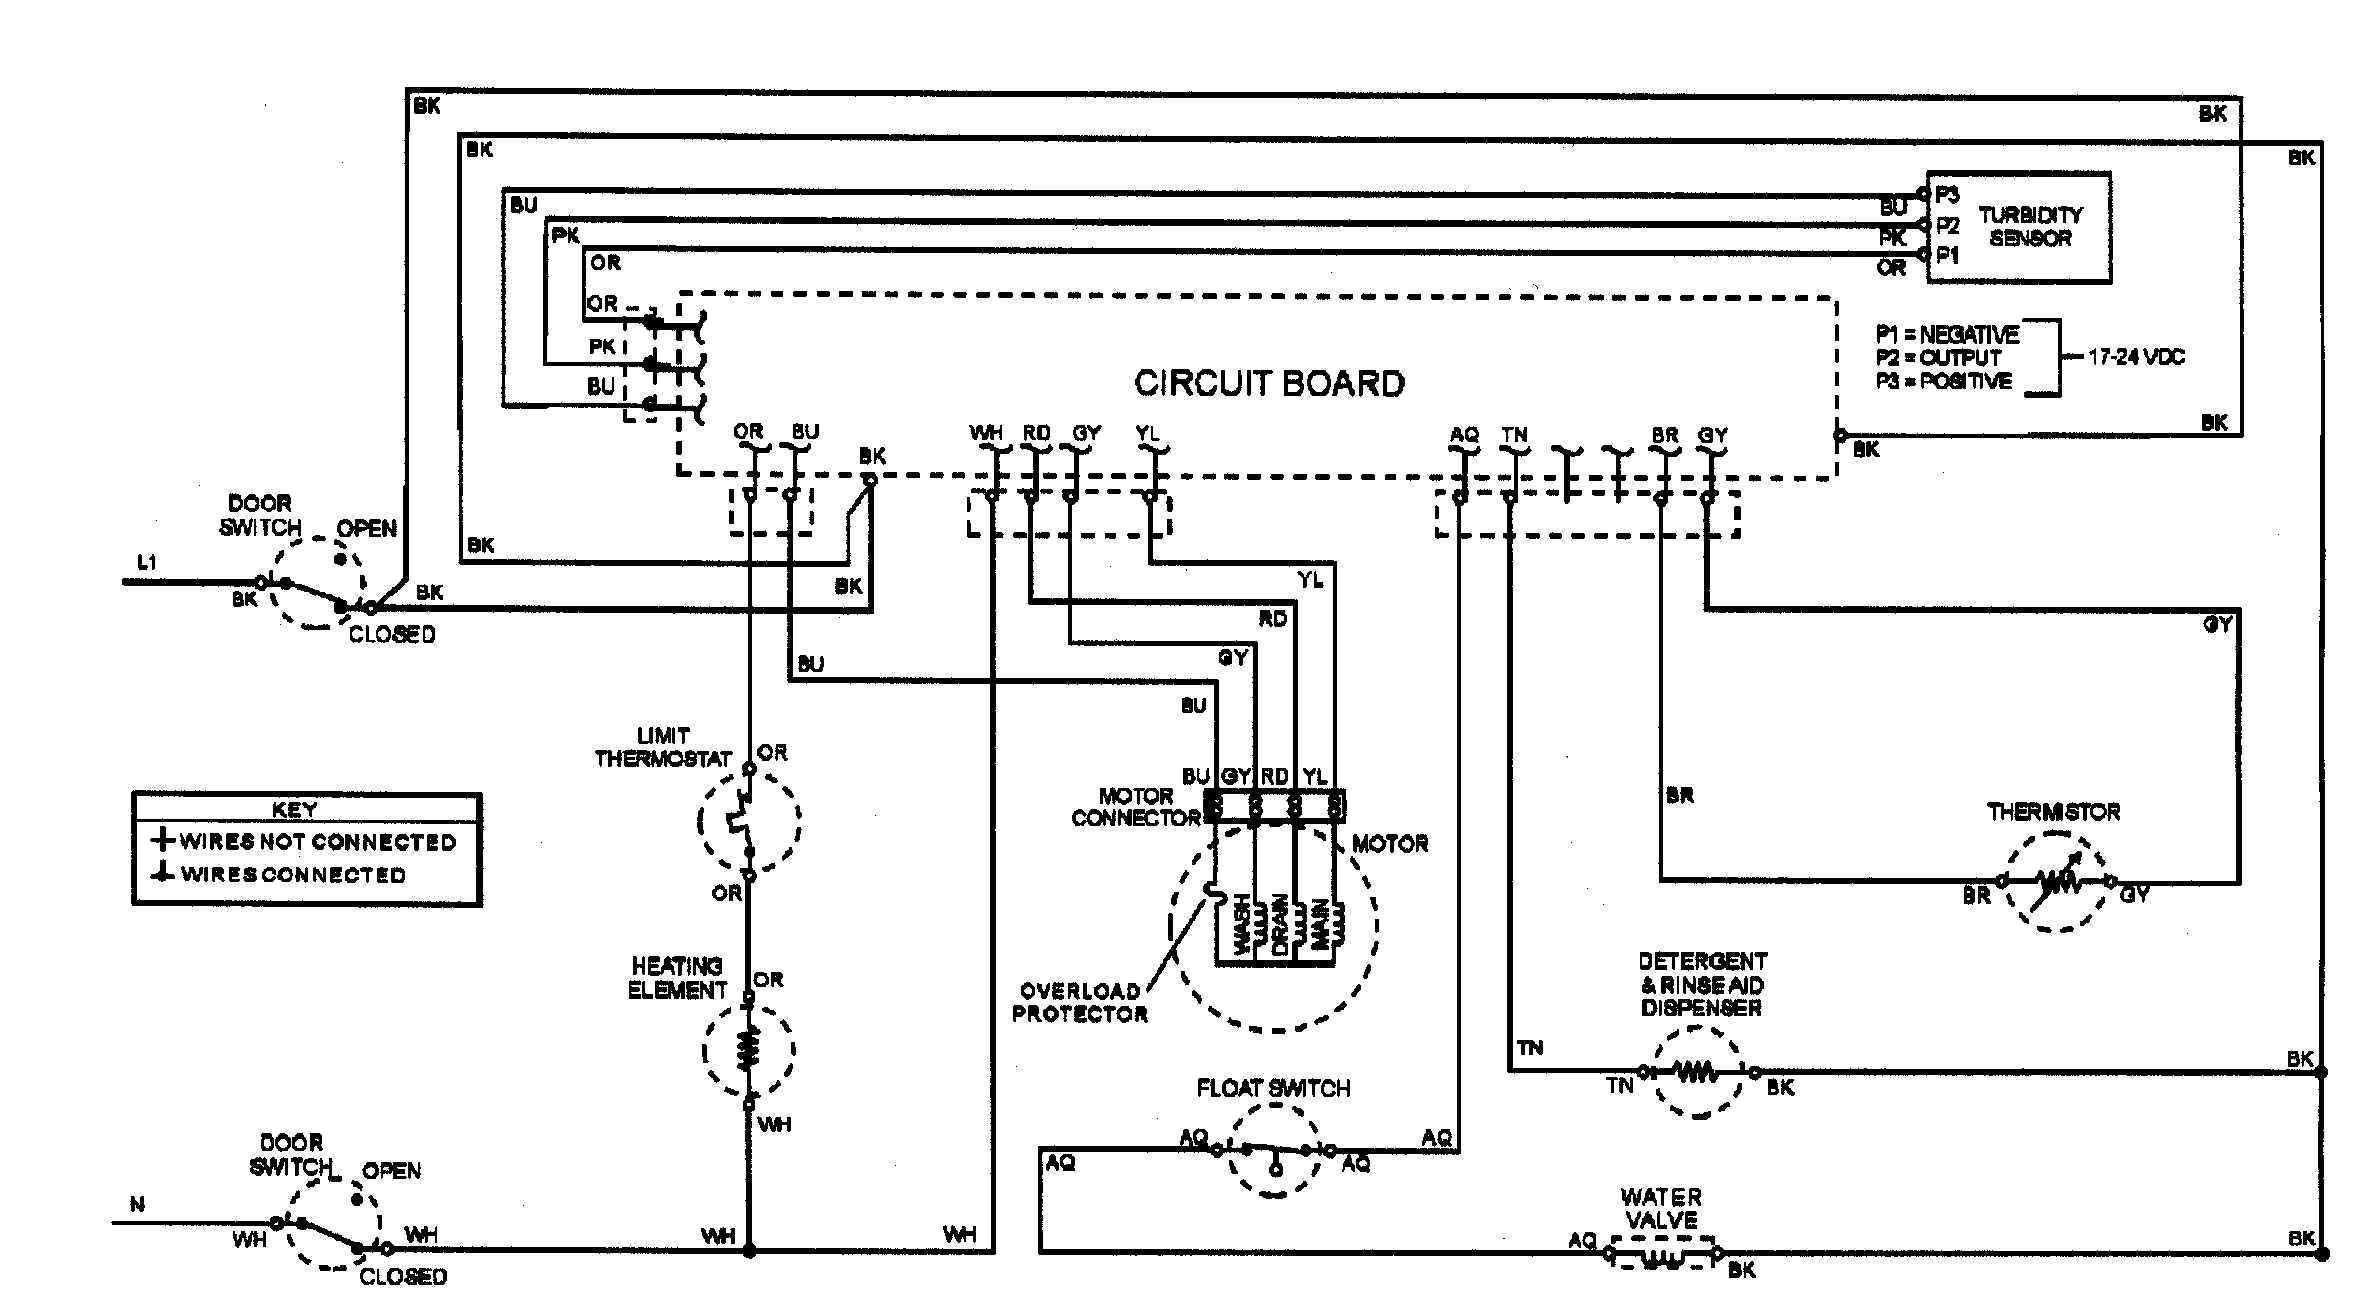 Amana ADW862EAC wiring information diagram